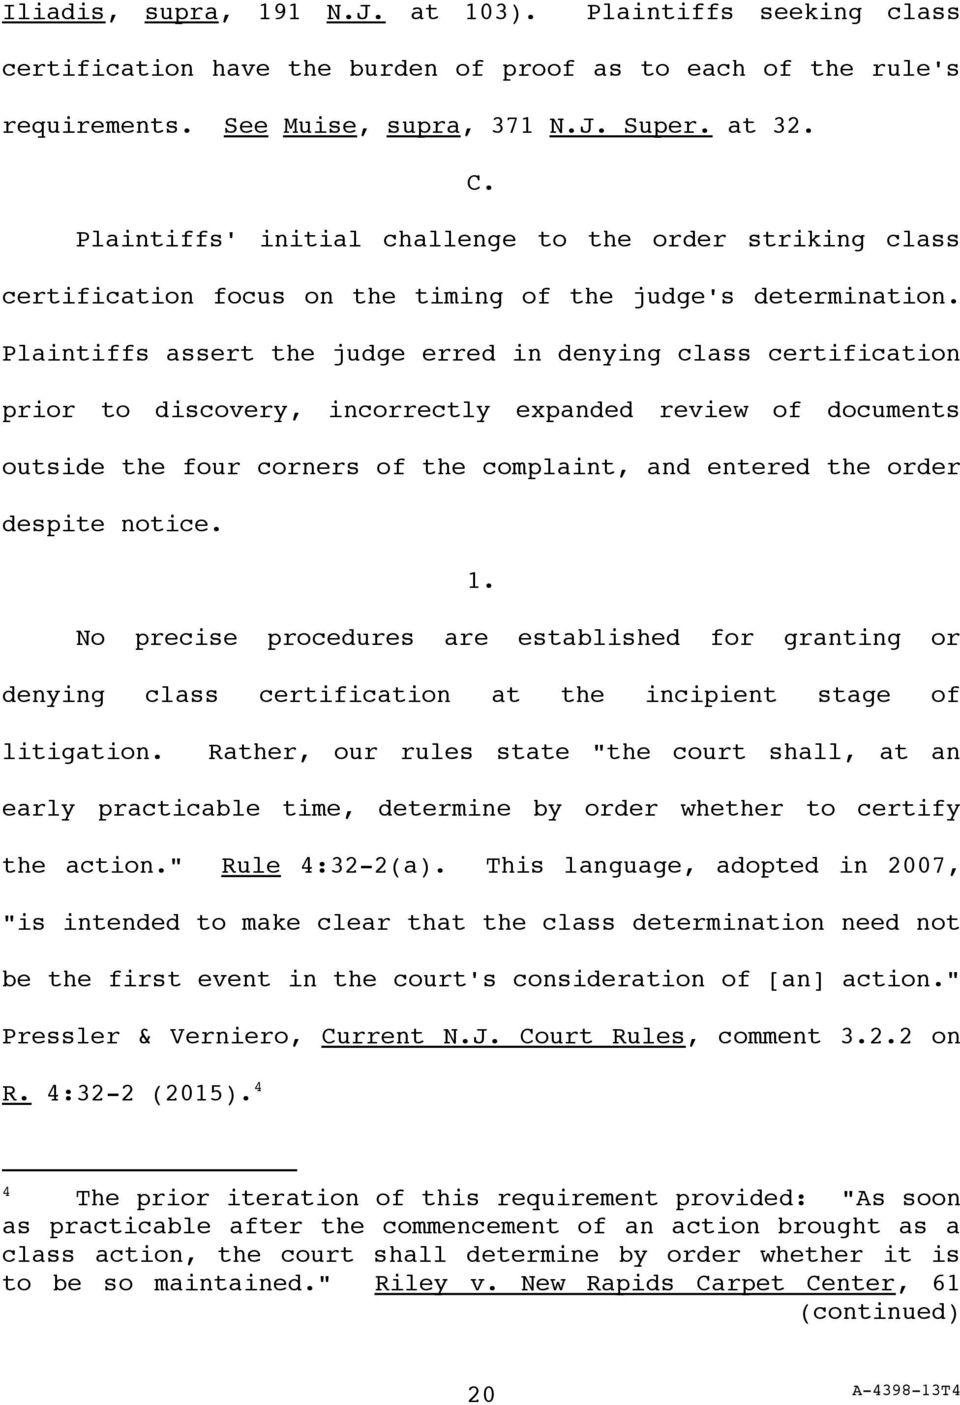 Plaintiffs assert the judge erred in denying class certification prior to discovery, incorrectly expanded review of documents outside the four corners of the complaint, and entered the order despite